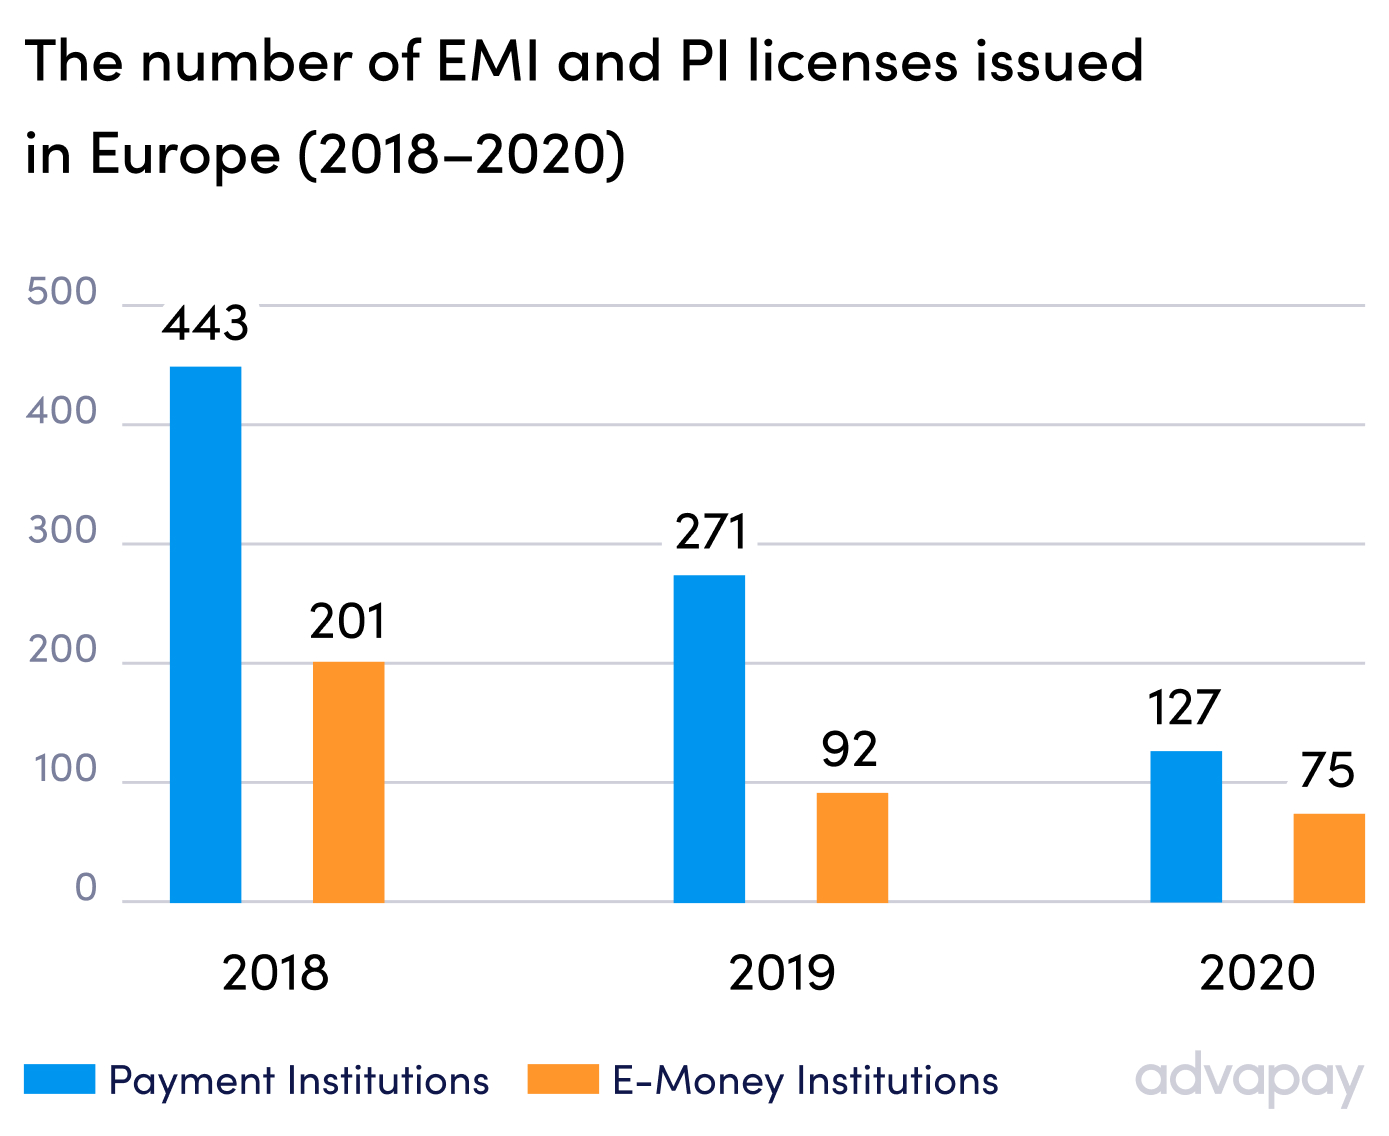 The total number of Payment Institution and E-money licenses issued in 2018-2020